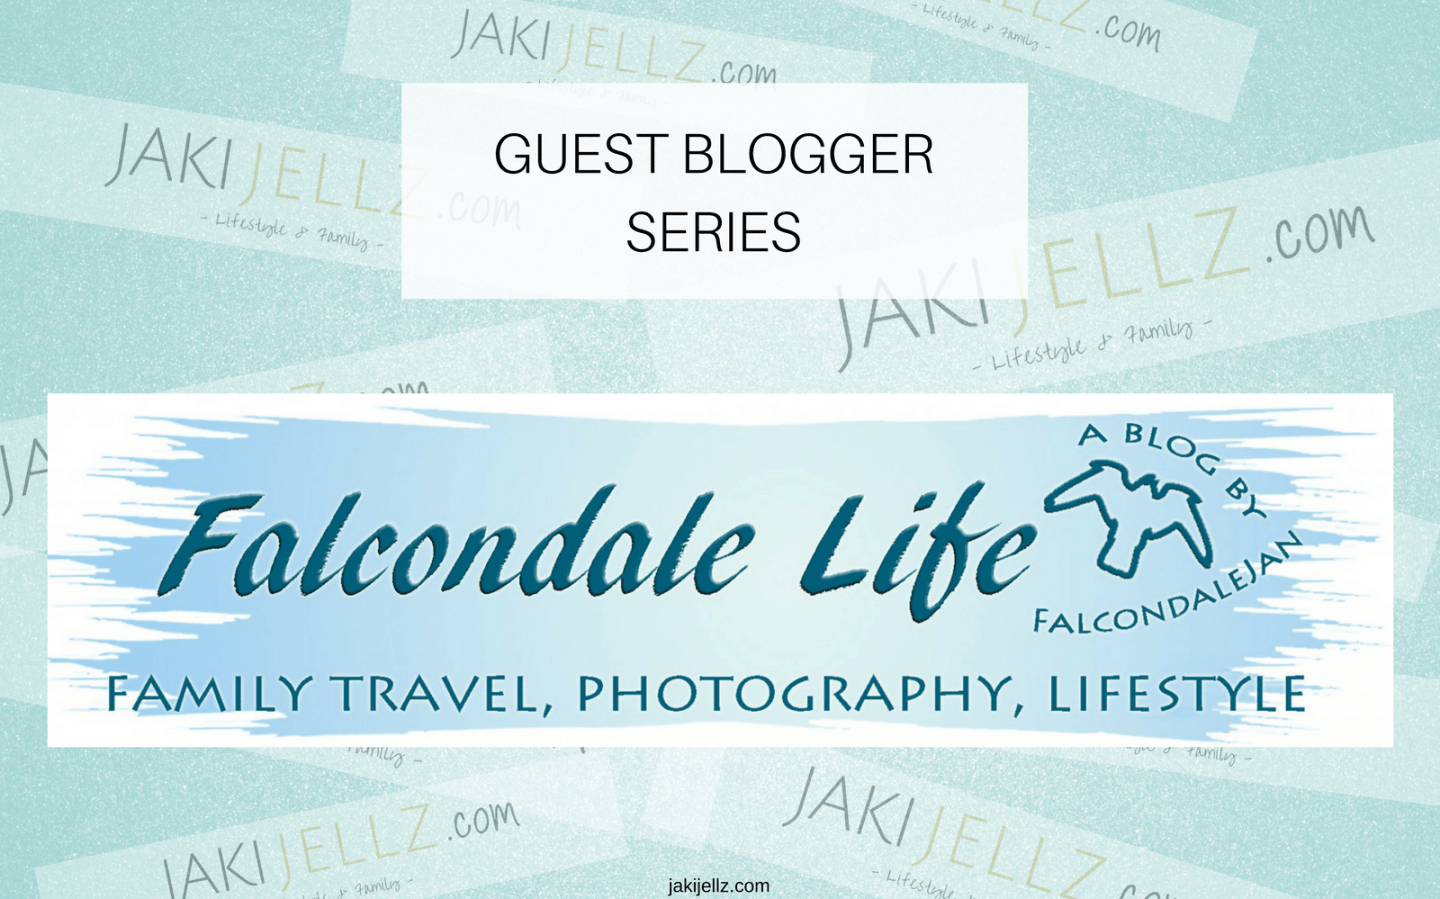 Guest Blogger Series: A musical instrument for your child – buy, rent or borrow? – Falcondale Life